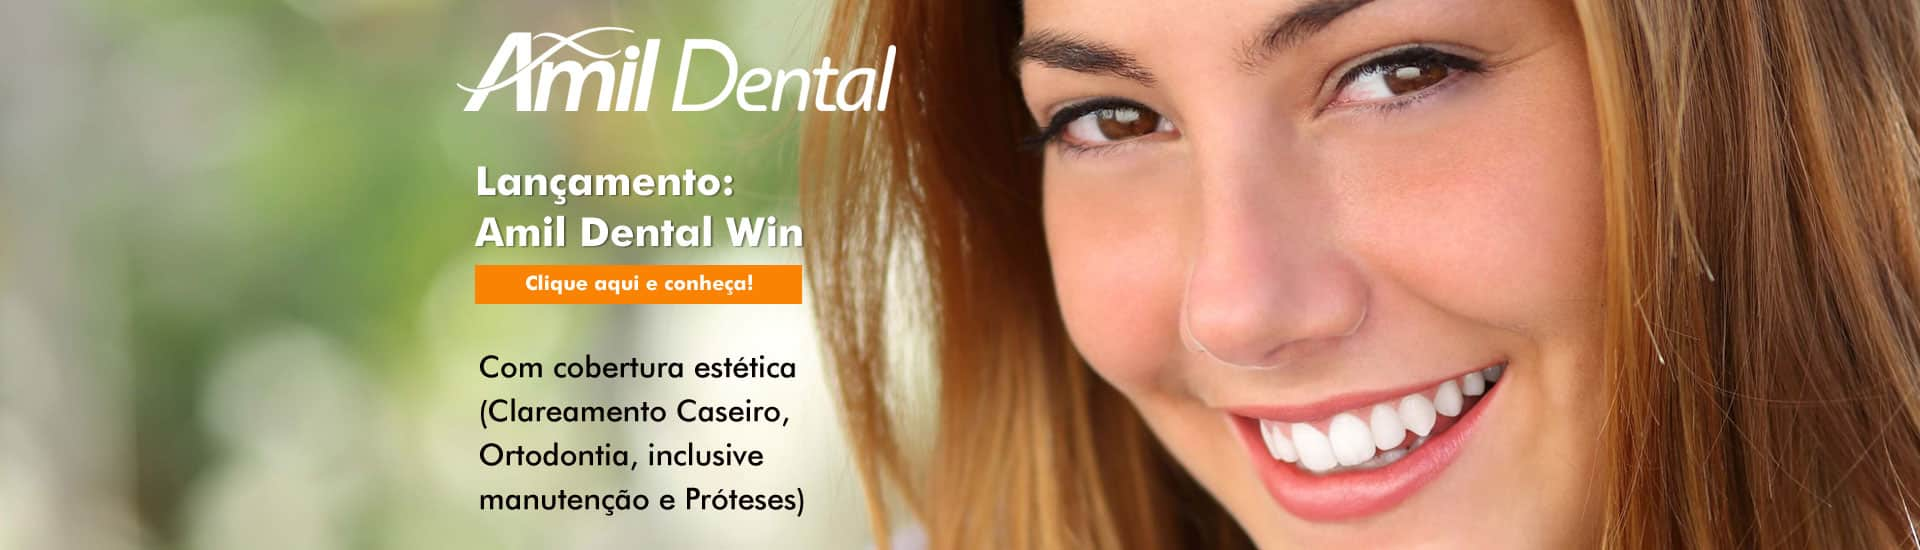 Plano Amil Dental Win